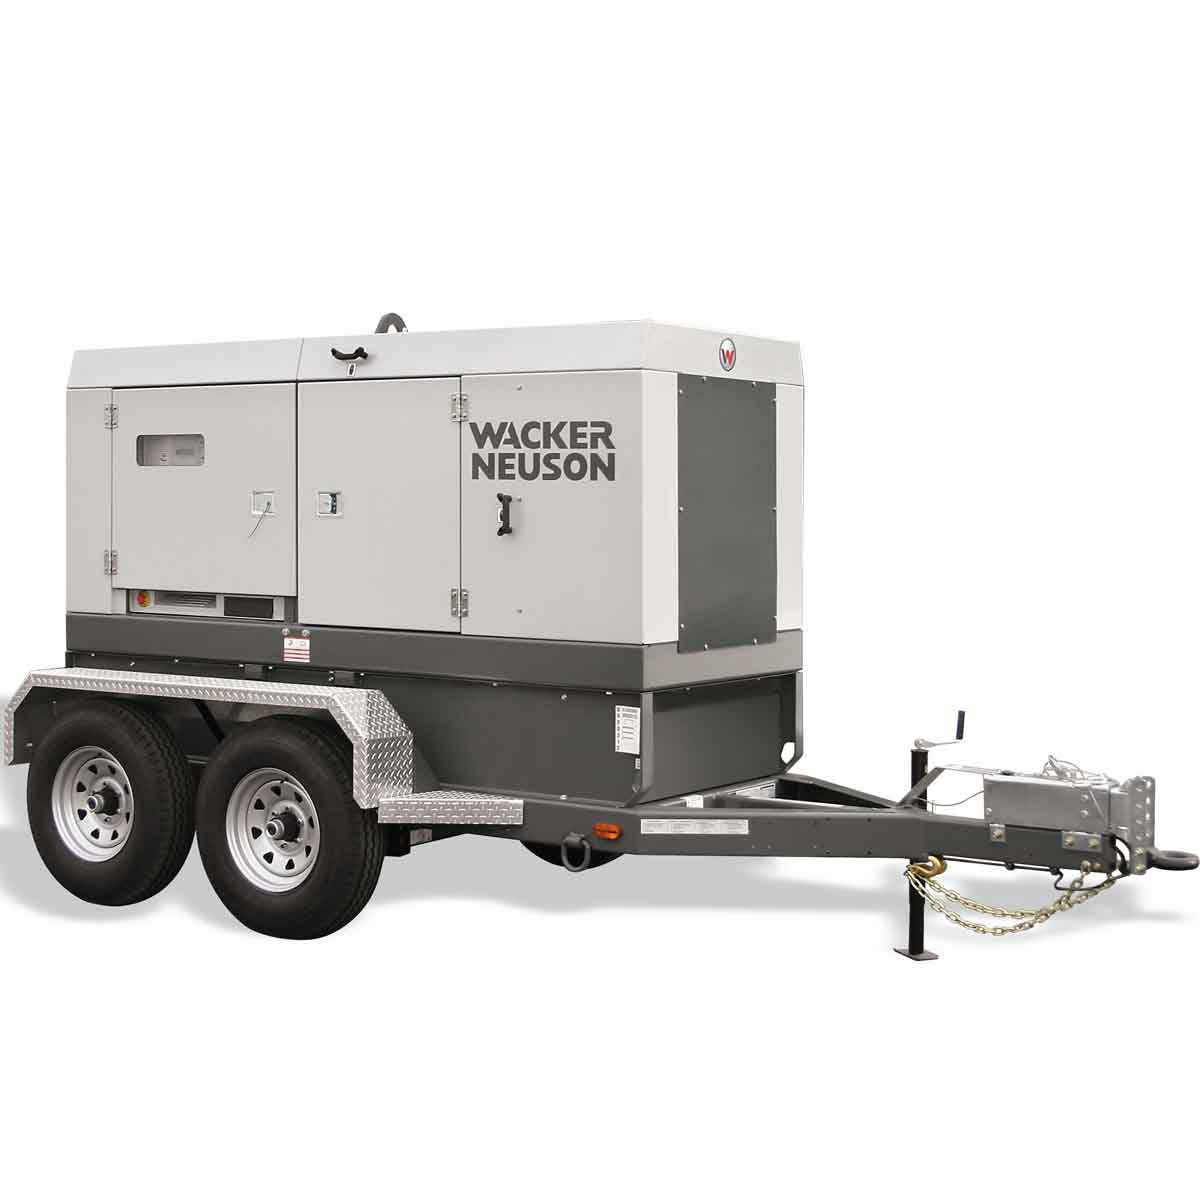 Wacker Neuson G 120 Mobile Generators